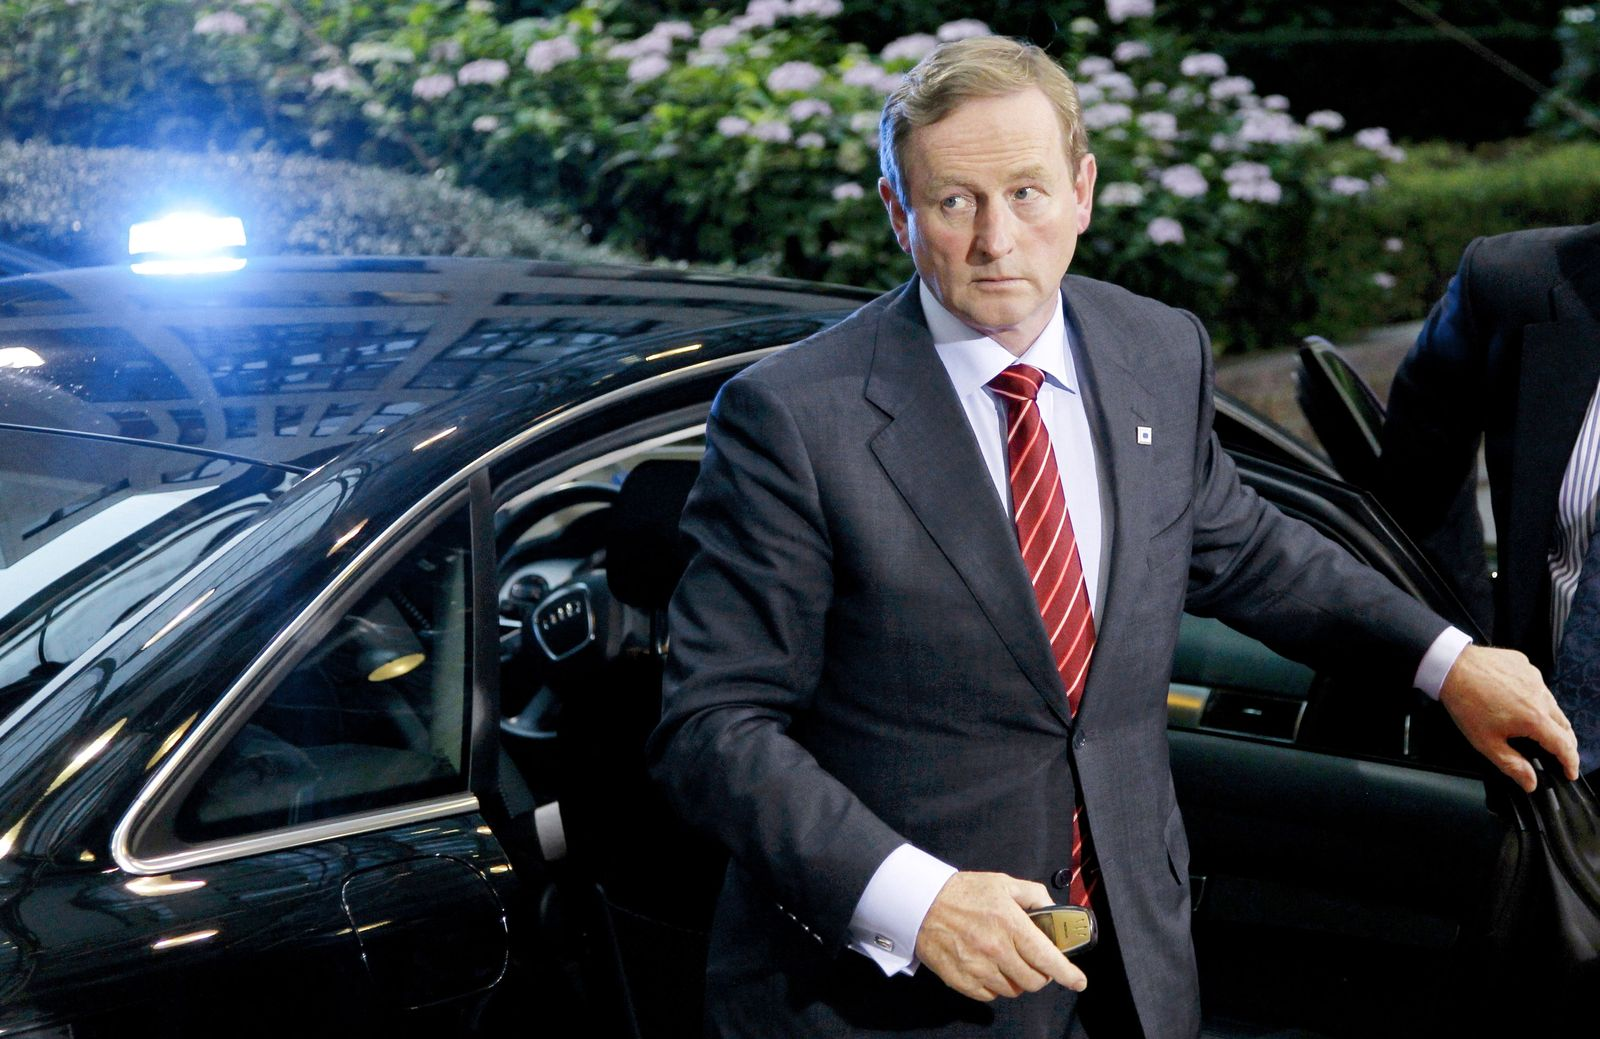 SP 46/2011 p90 SPIN Irland Enda Kenny